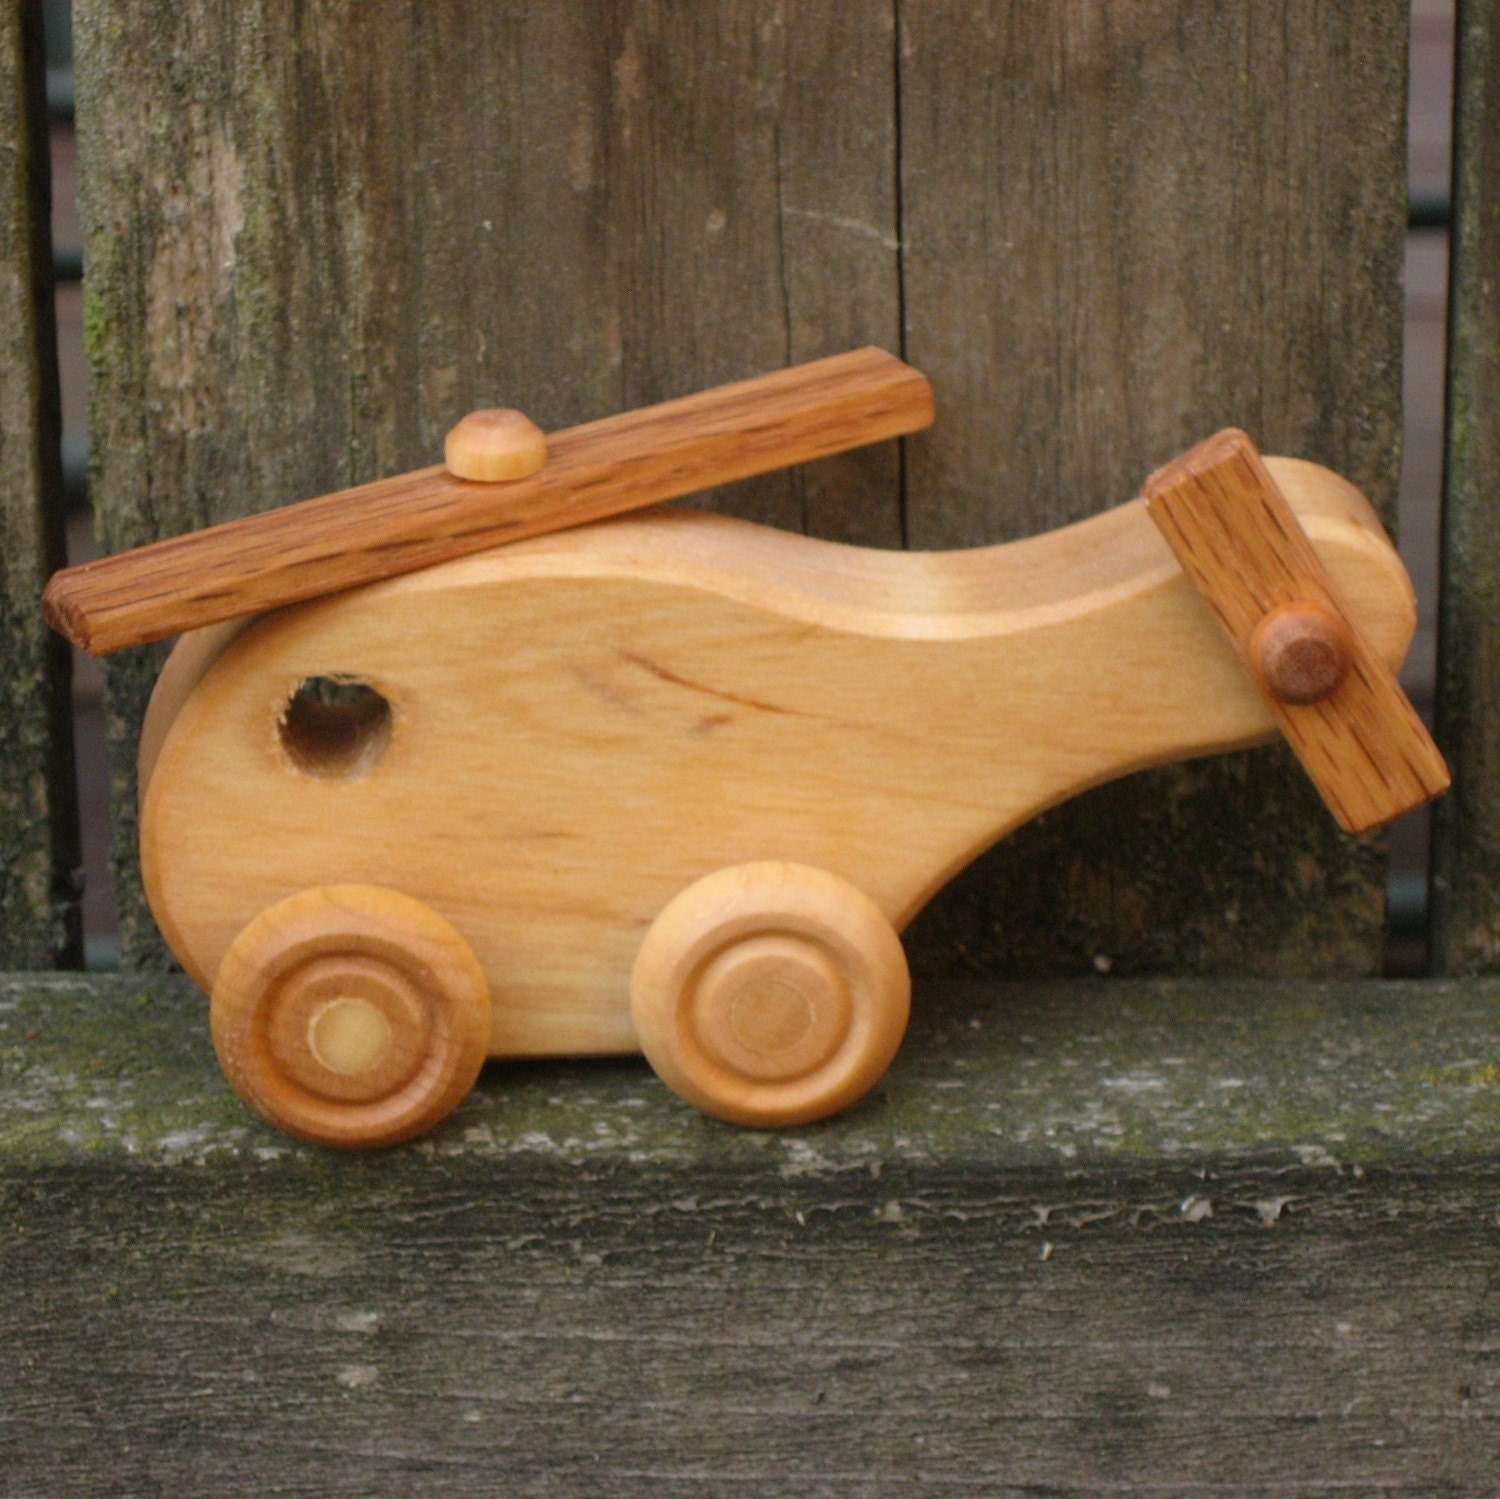 Kids Wooden Toy Helicopter Kids Handmade Natural Wood Toy